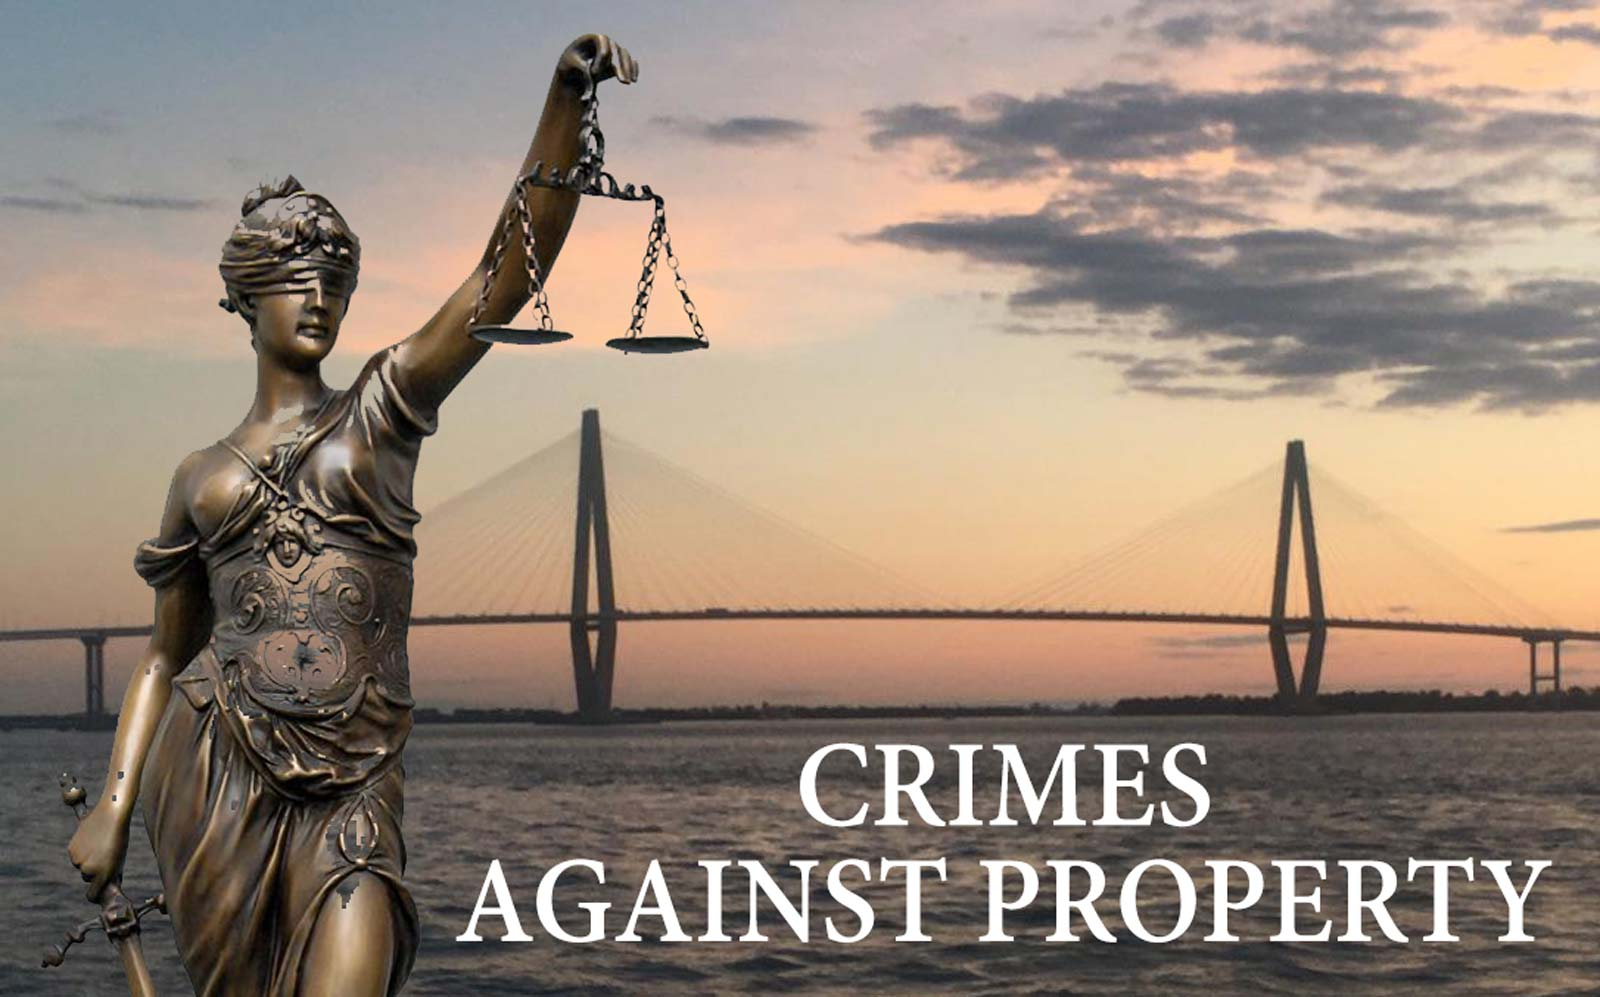 offenses-property-source Crimes Against Property | Mason Law Firm